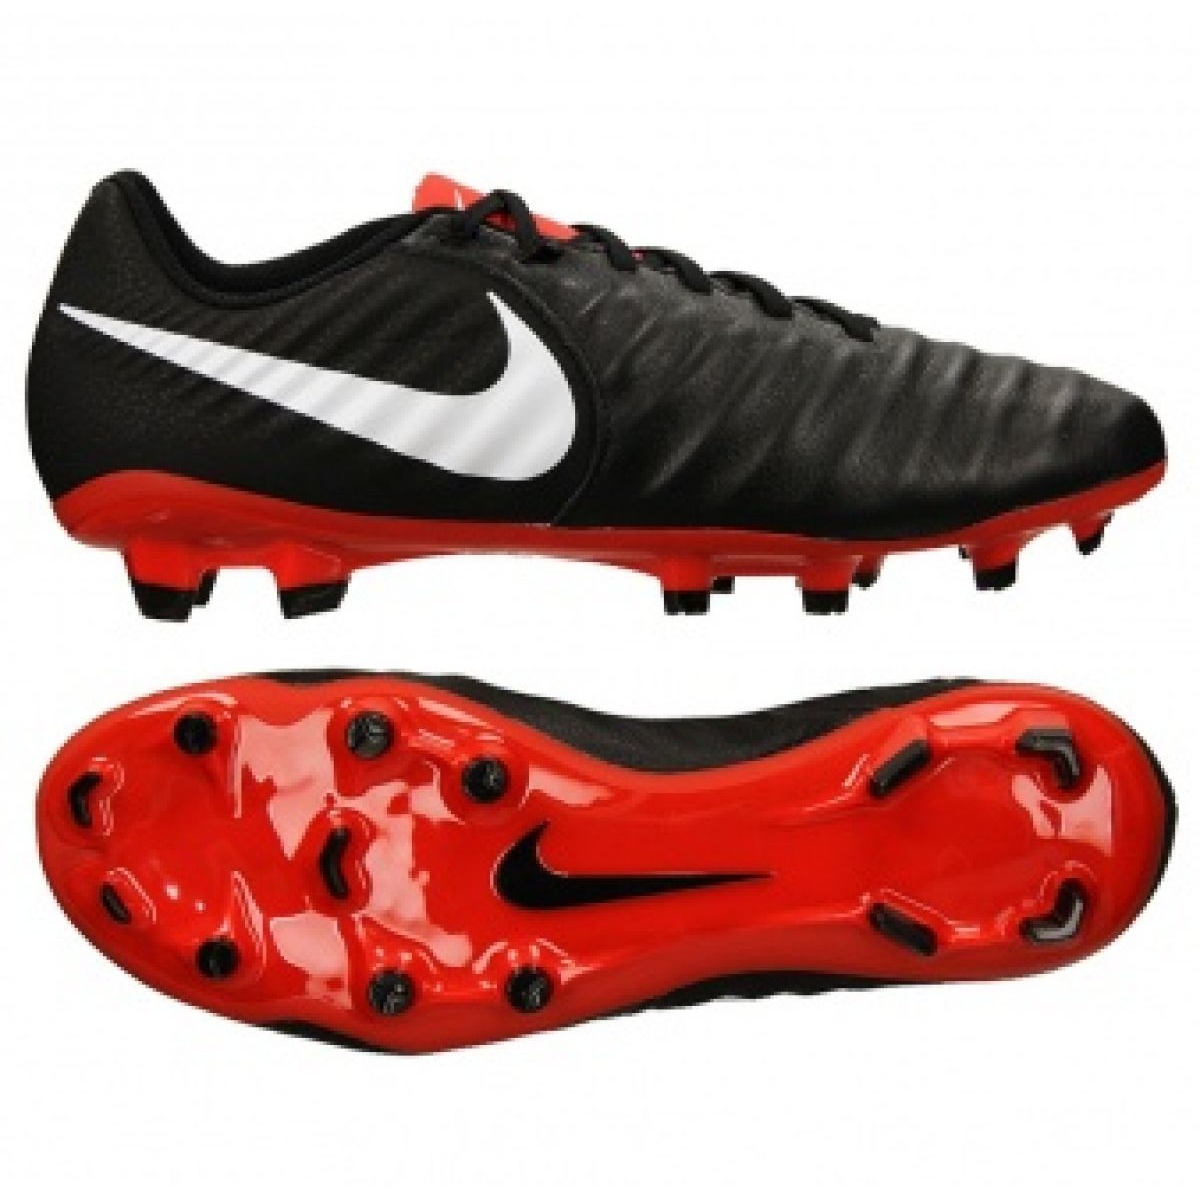 094d4433a6217 Football shoes Nike Legend 7 Academy Fg M AO2596-006 - ButyModne.pl